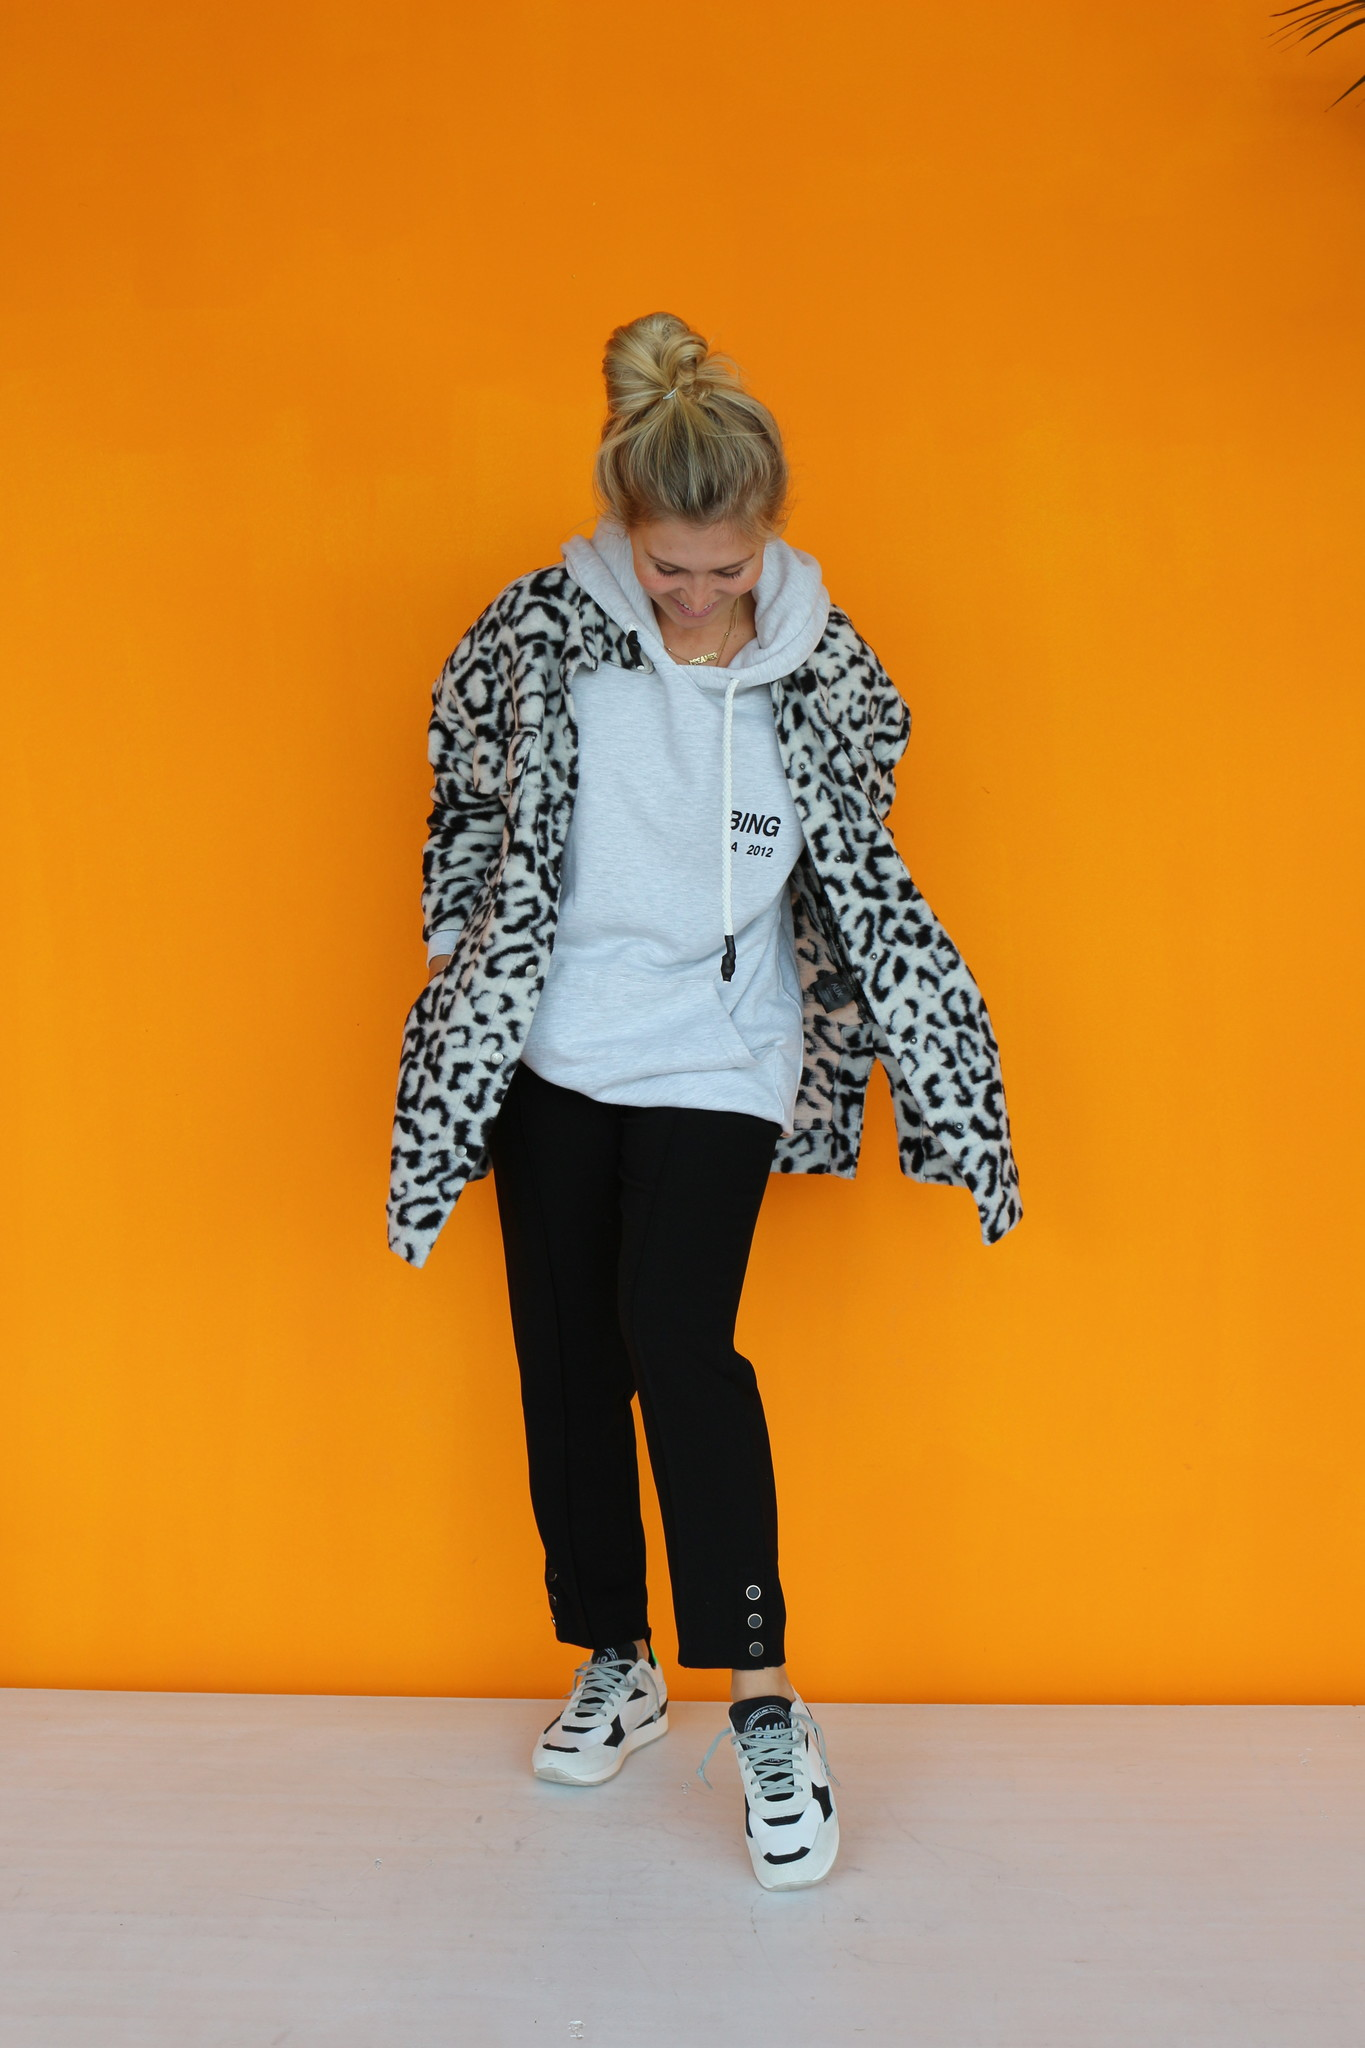 ALIX THE LABEL JACKET FROM ALIX THE LABEL